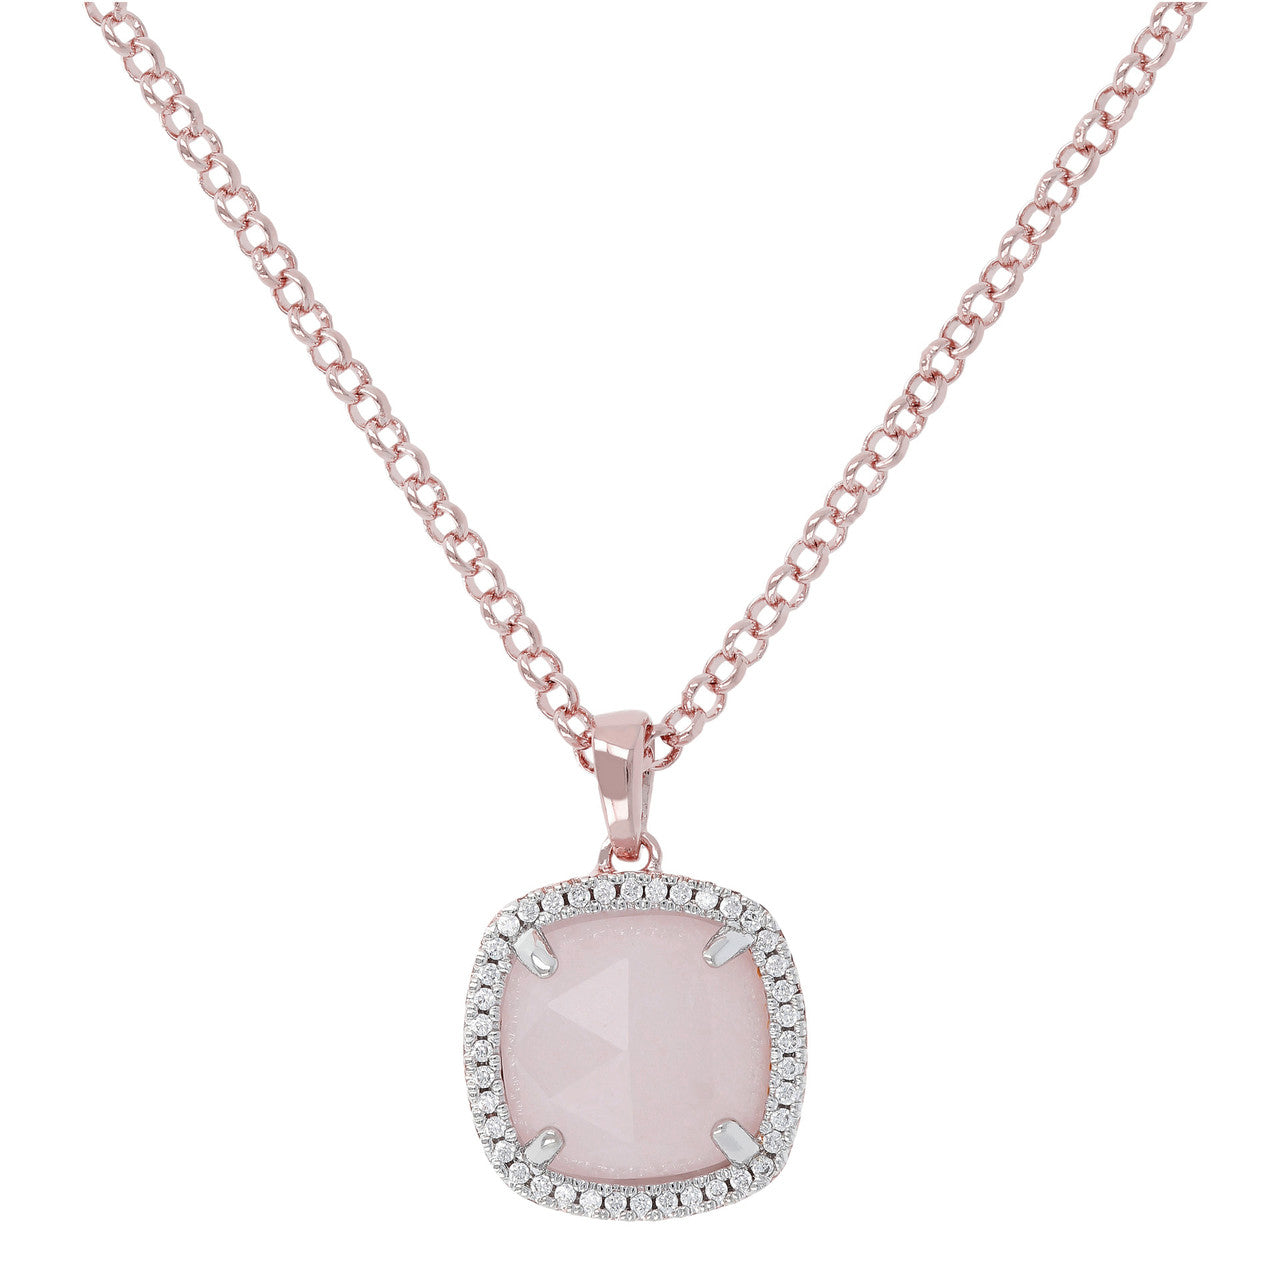 Cushion Quartz Pendant Necklace ROSE QUARTZ